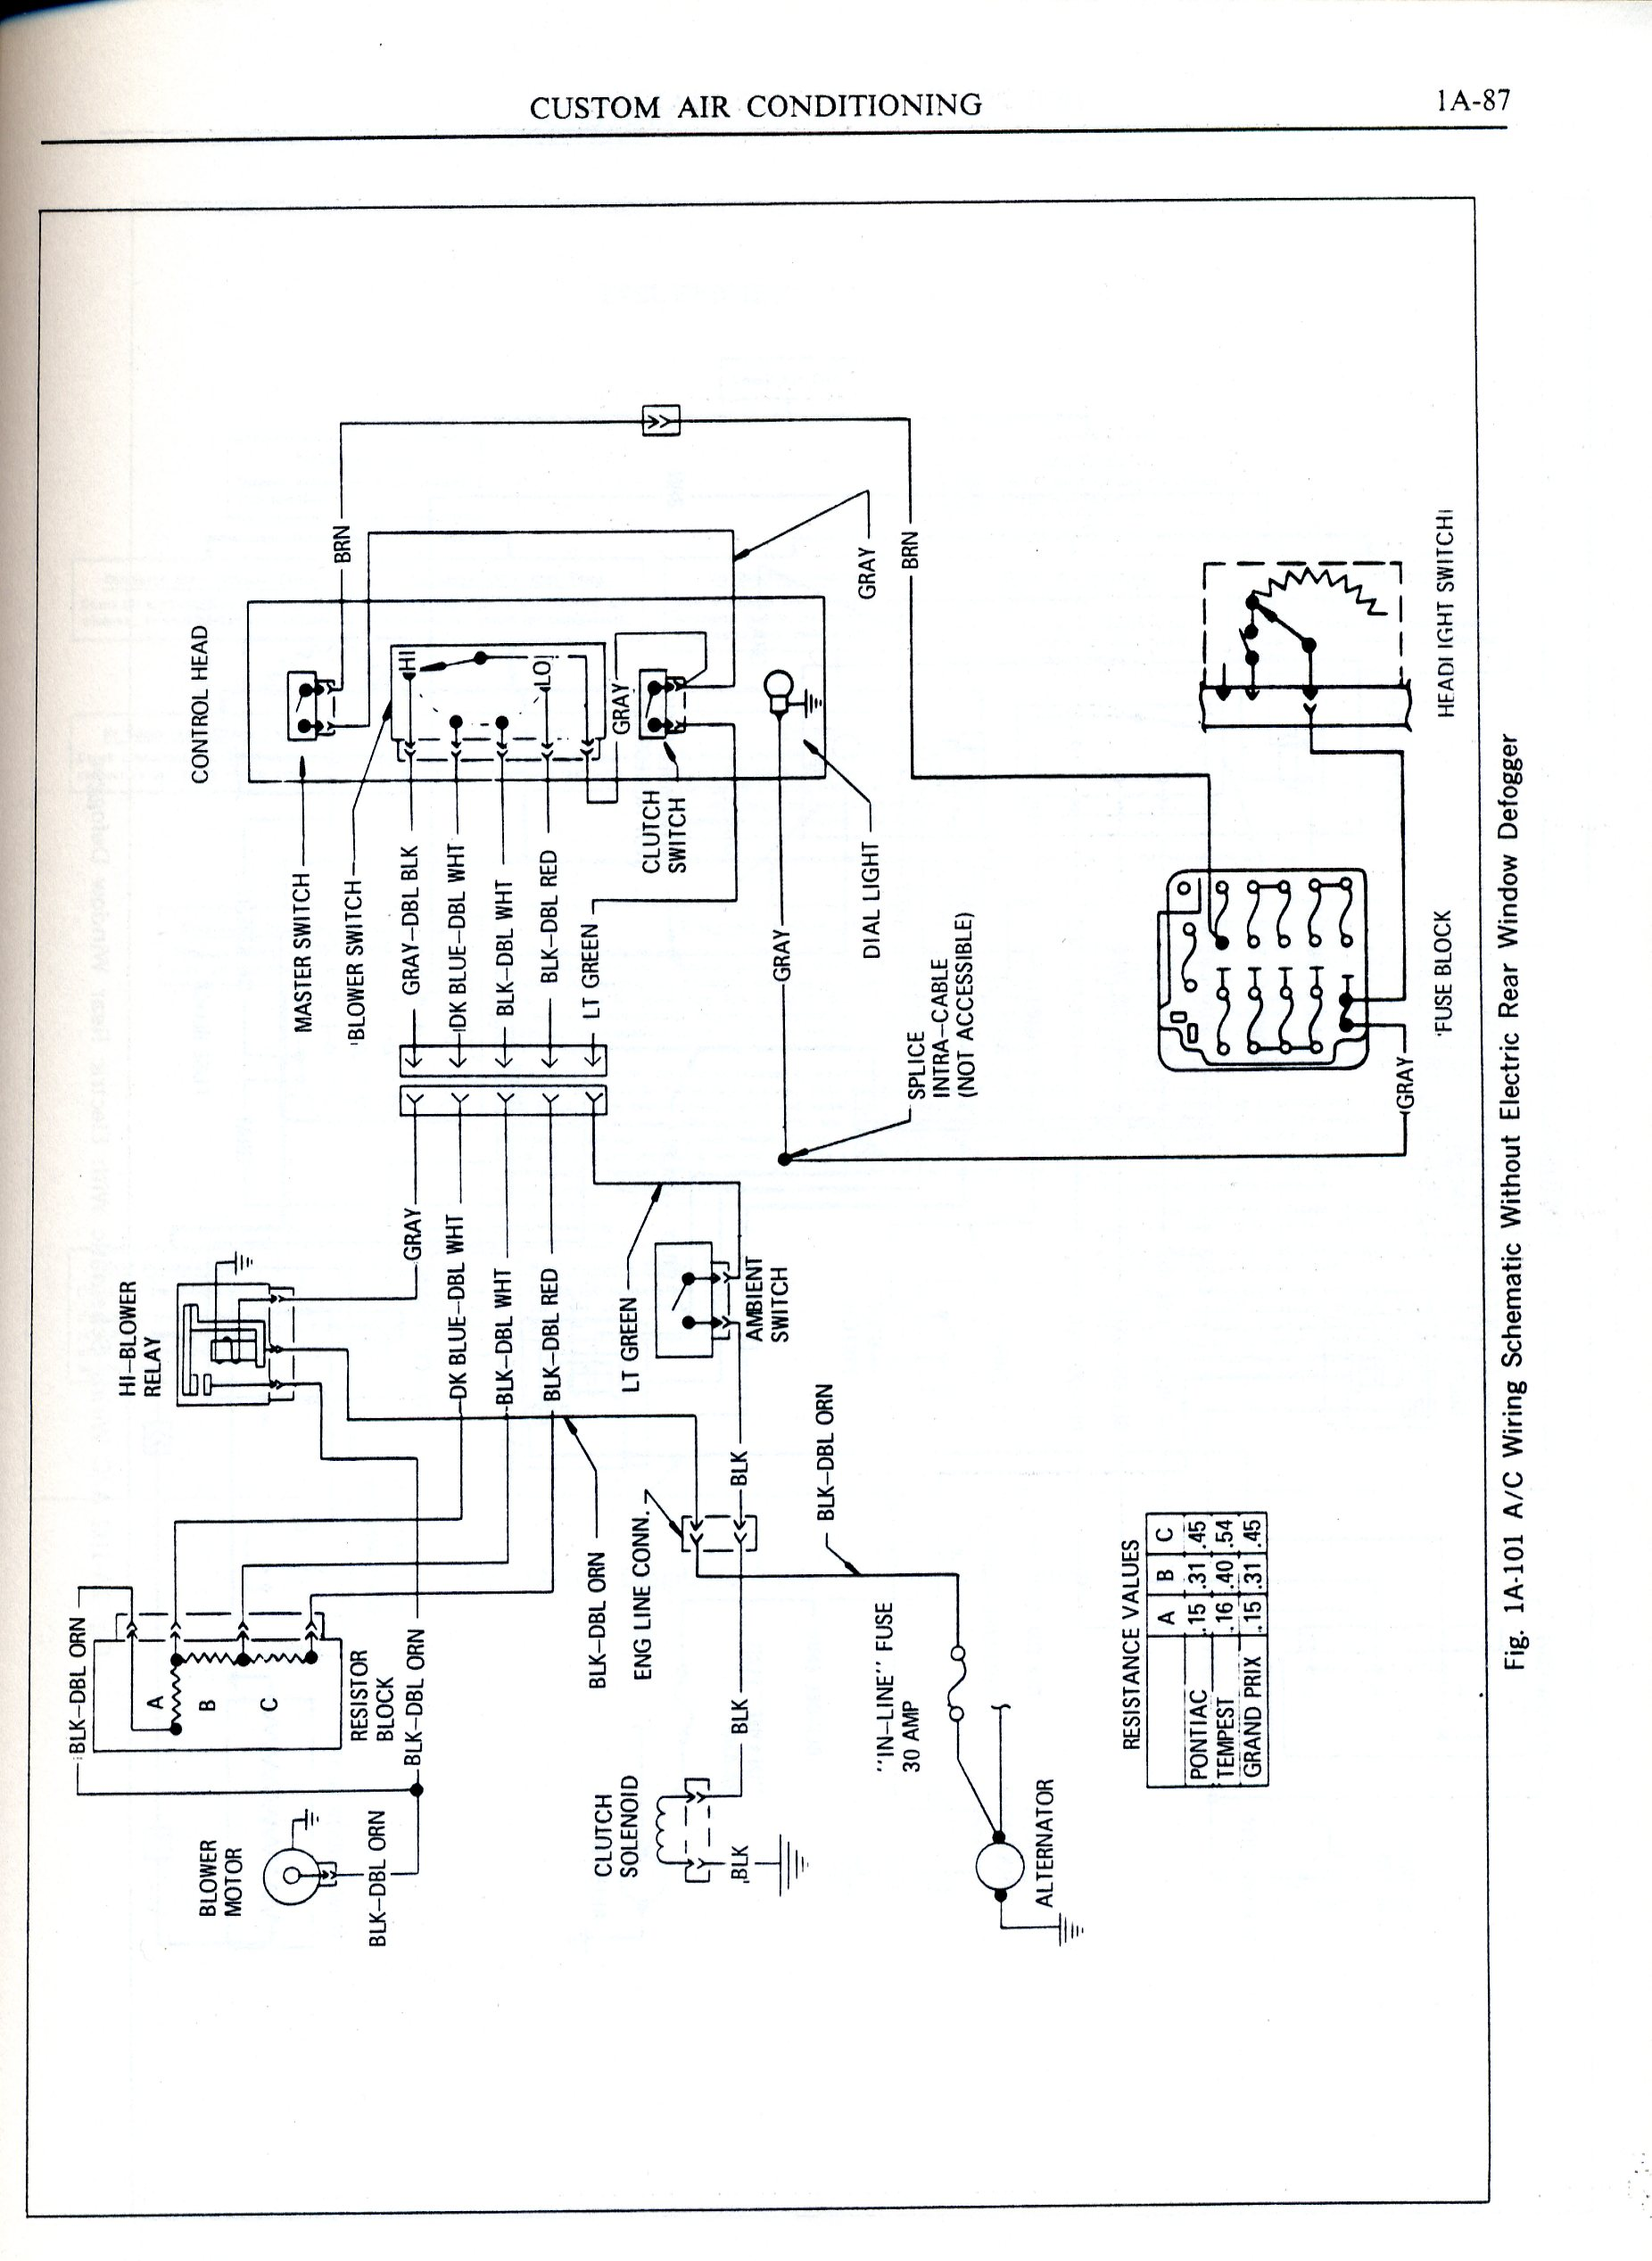 1971 Pontiac Lemans Wiring Diagram Great Design Of For 67 1970 Gto Dash Tachometer 1965 1964 Diagrams